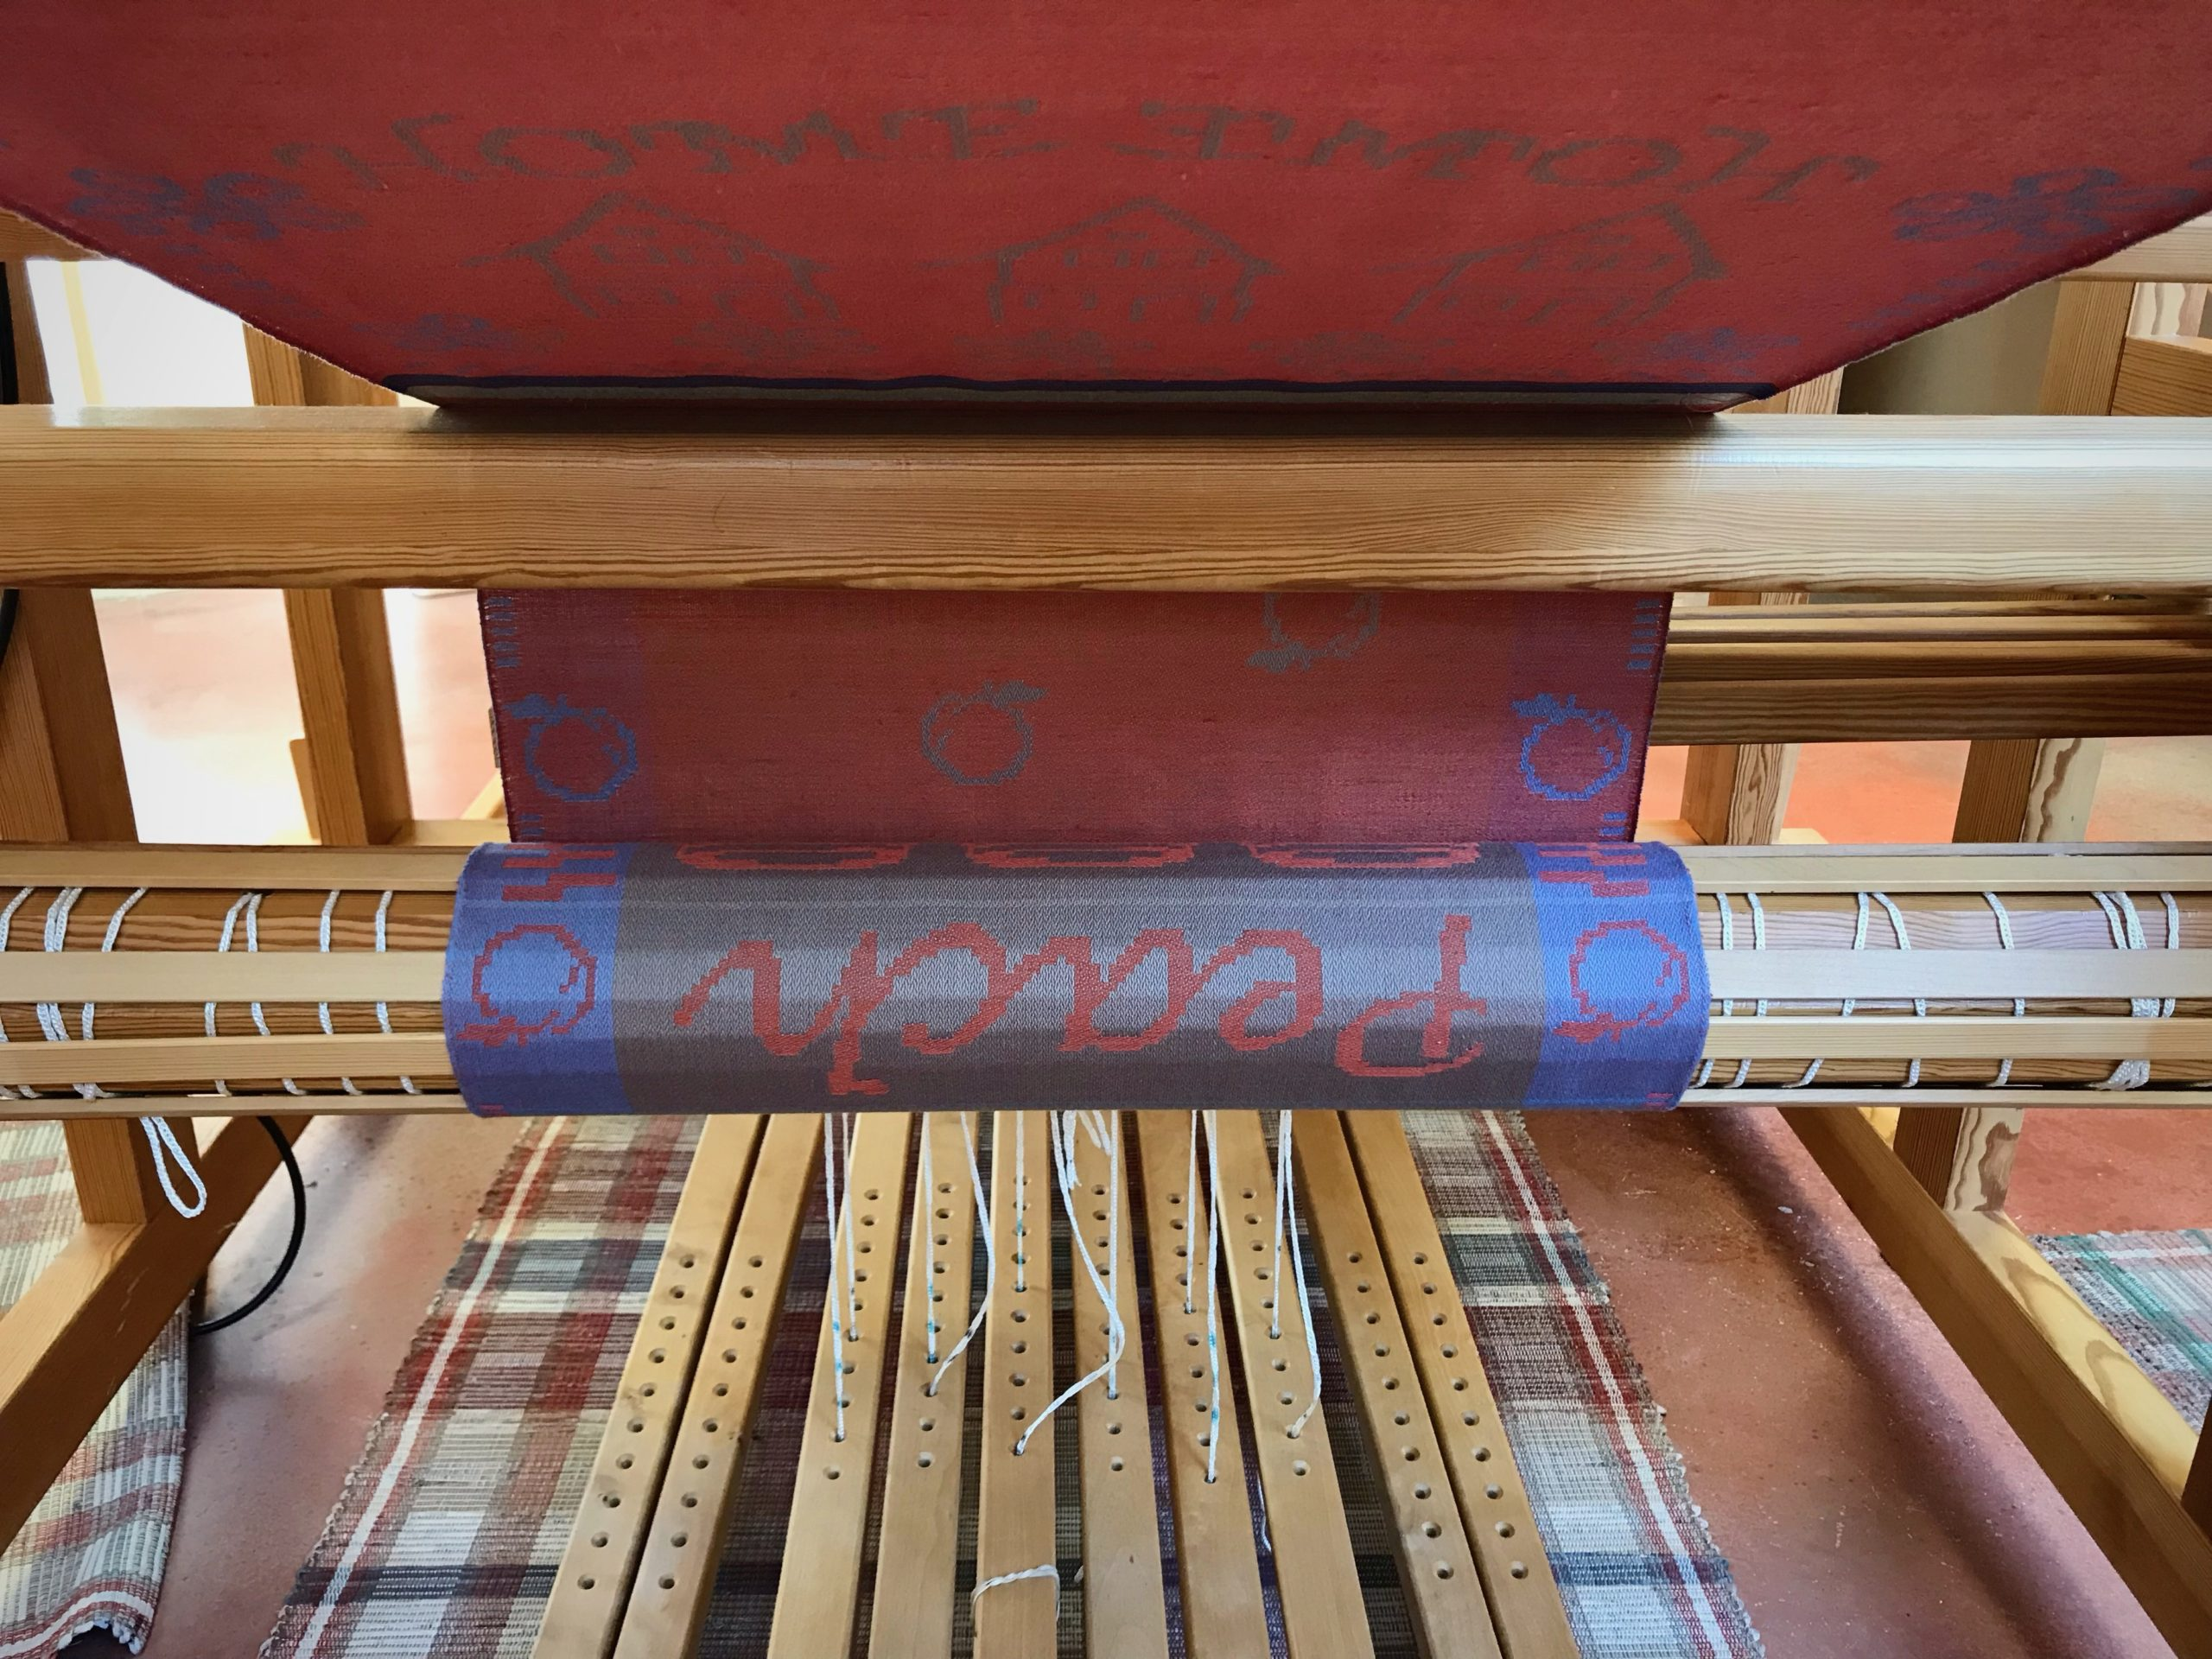 Anticipation! Seeing the reverse side of what's woven on the drawloom!